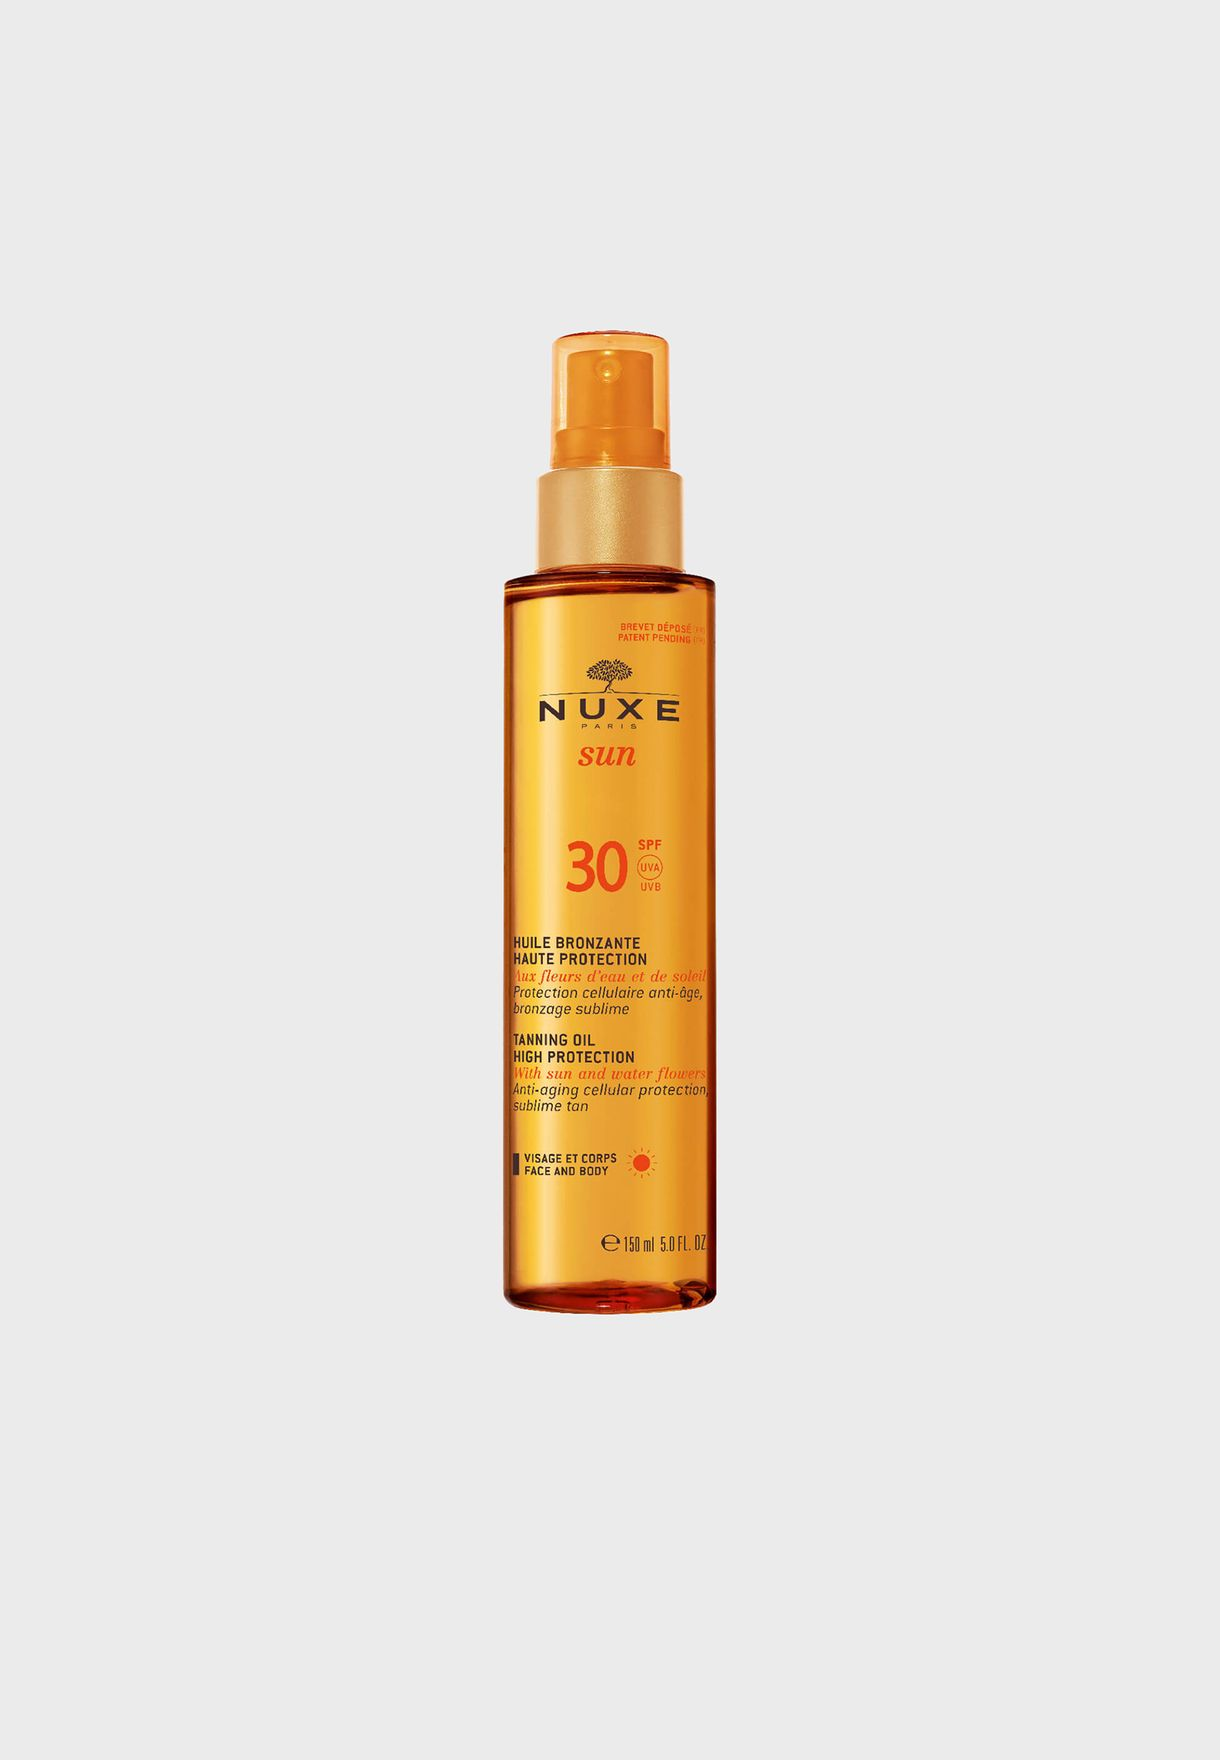 Tanning Oil High Protection SPF-30